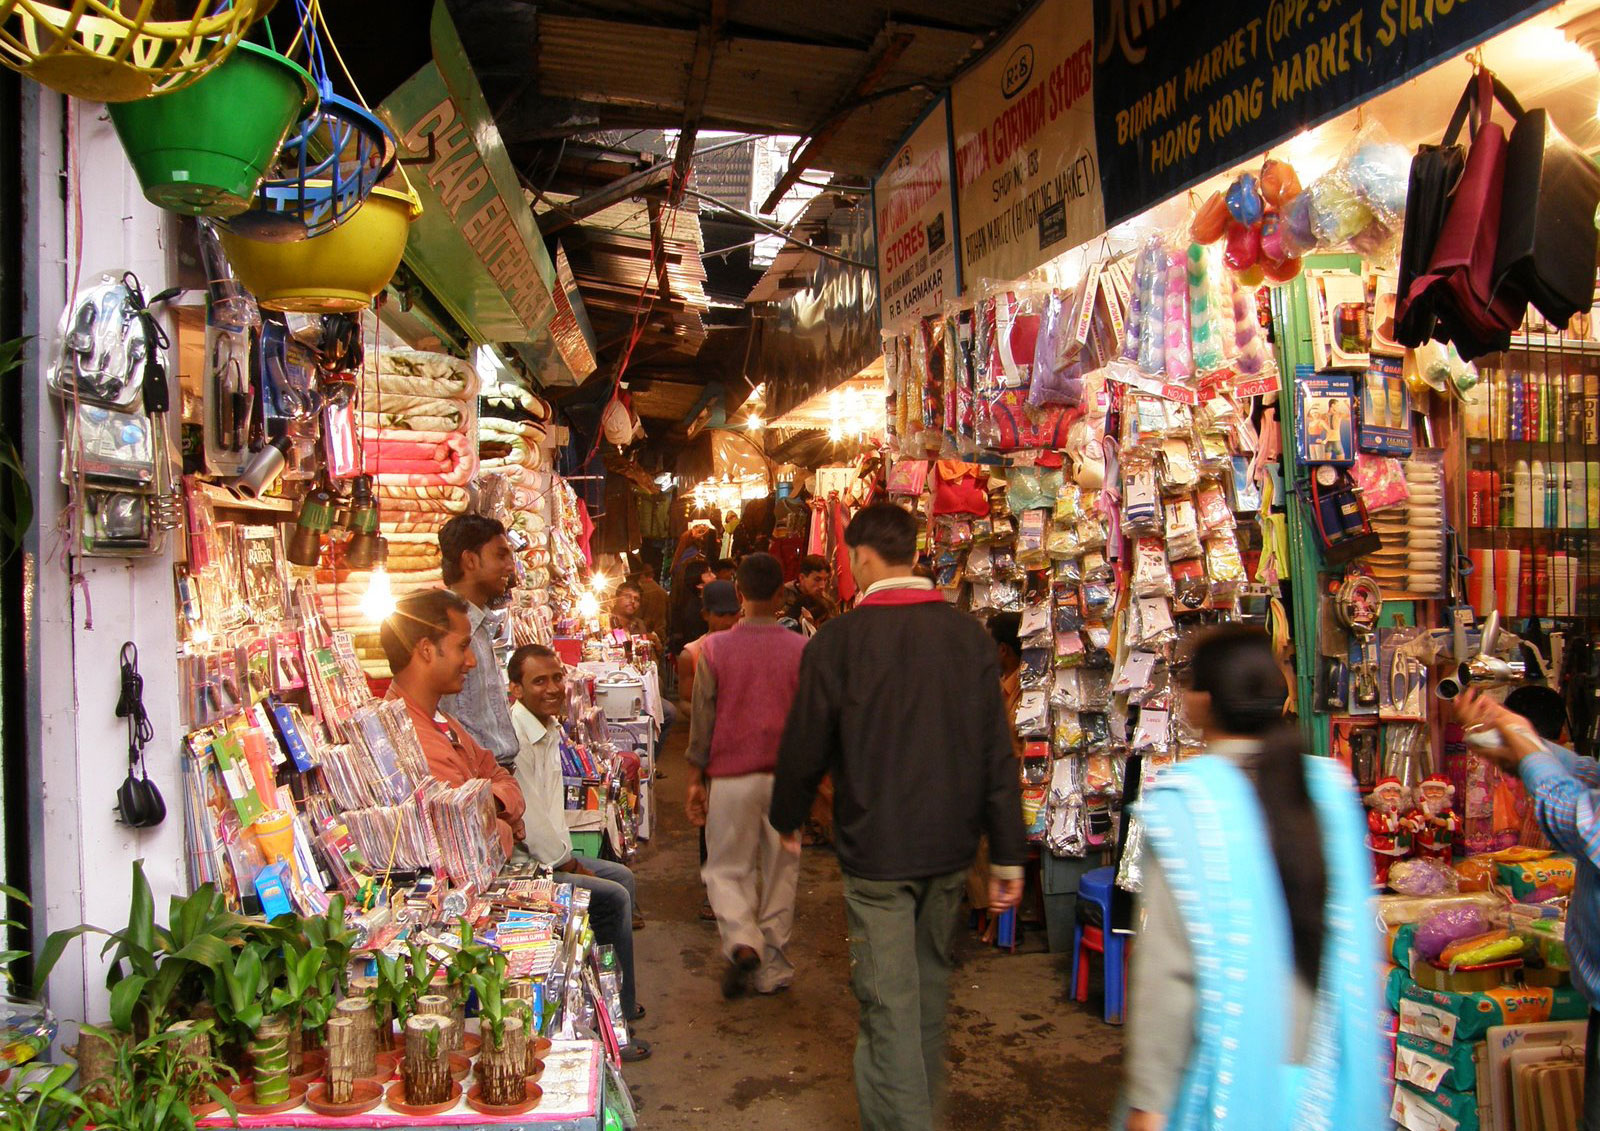 Amazing Shopping Place In Siliguri Which Are A Paradise For Shoppers - Hong Kong Market